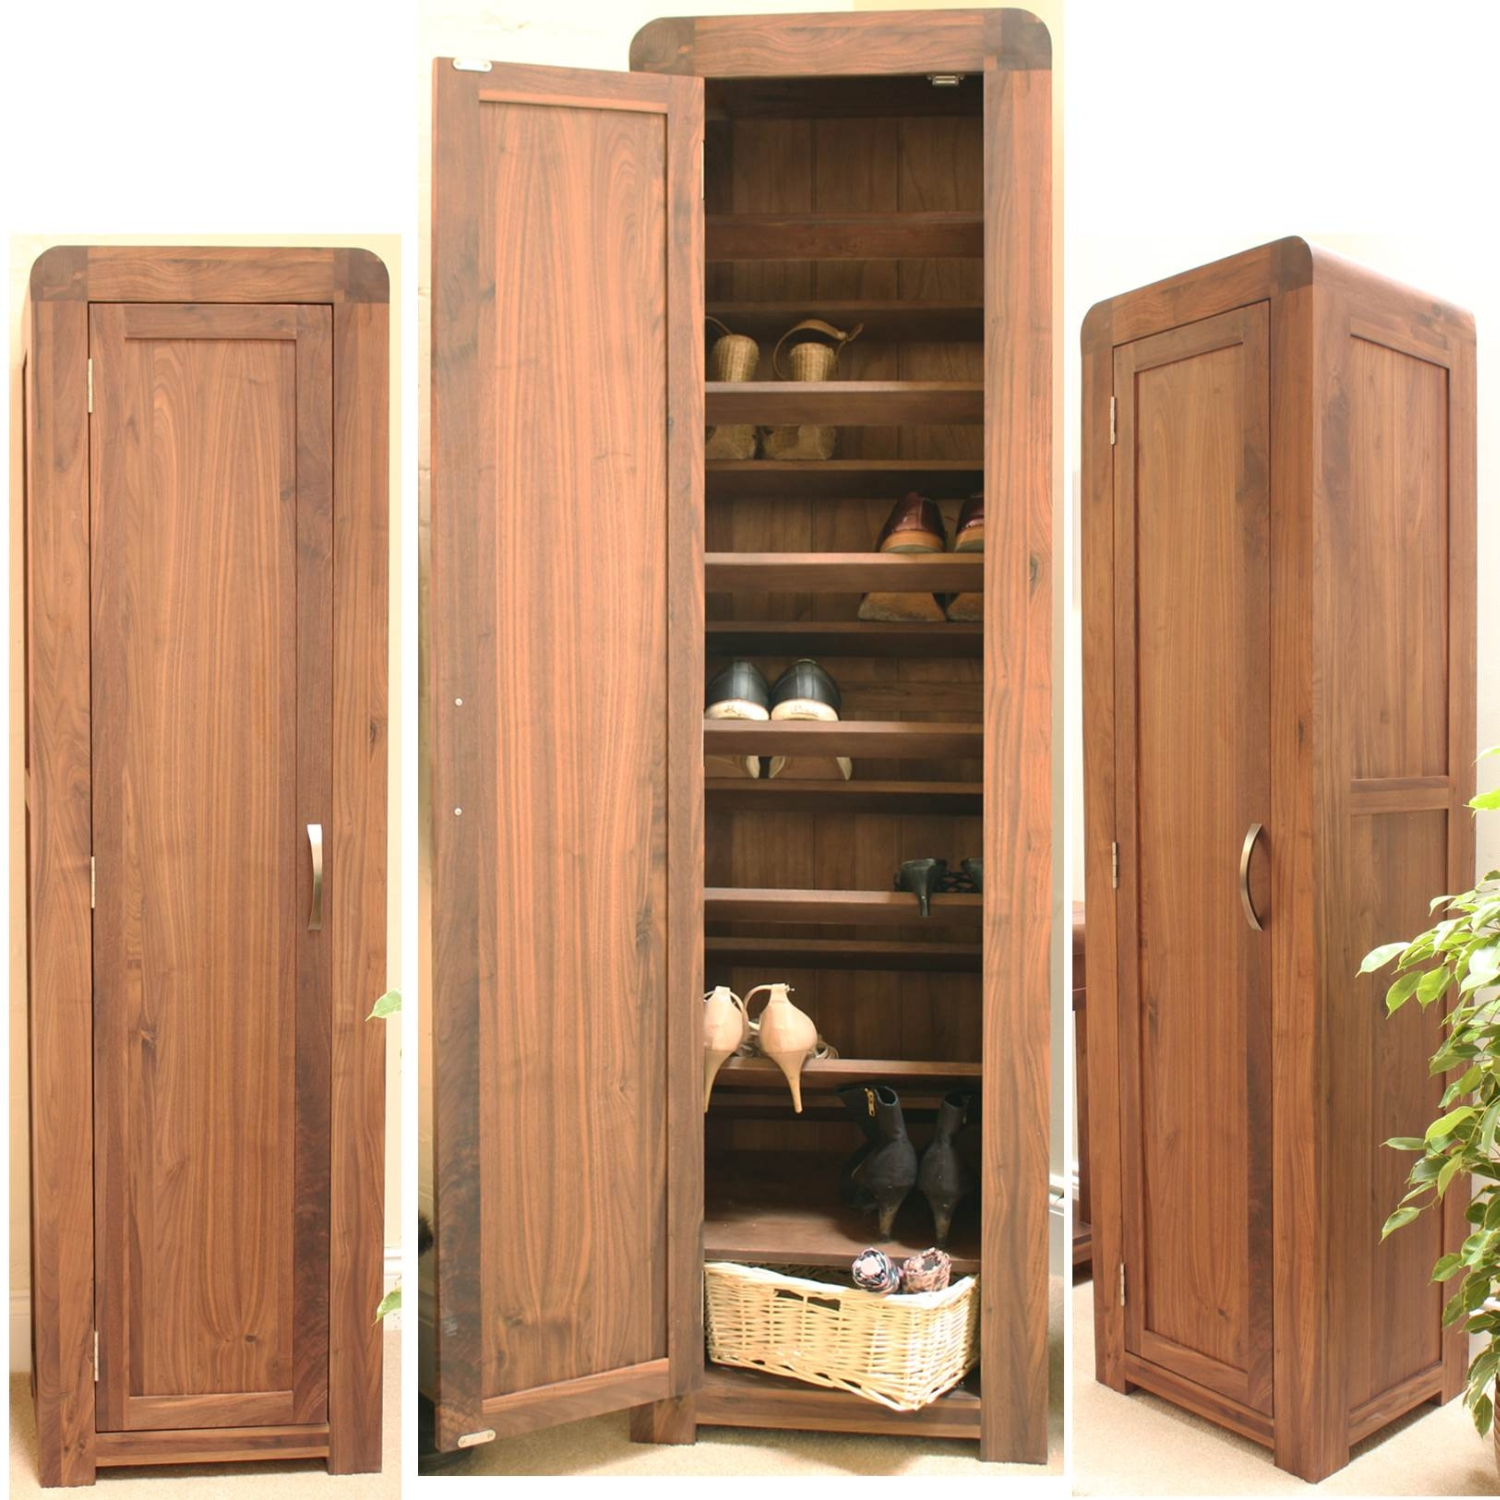 Strathmore Solid Walnut Furniture Shoe Cupboard Cabinet Tall Hallway Storage